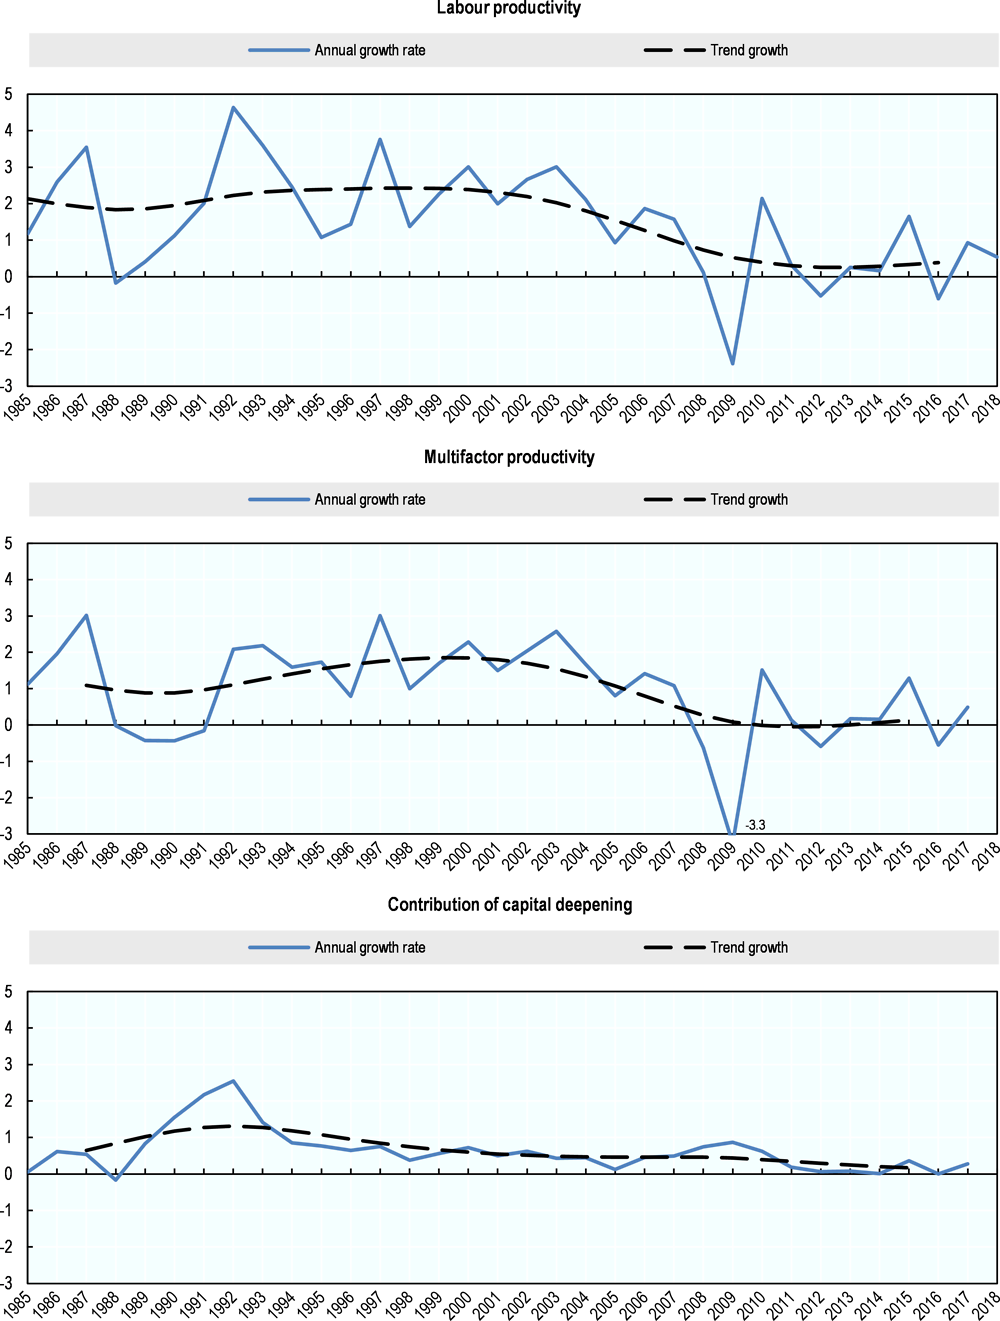 Figure 7.7. Labour productivity growth trend and its components, United Kingdom